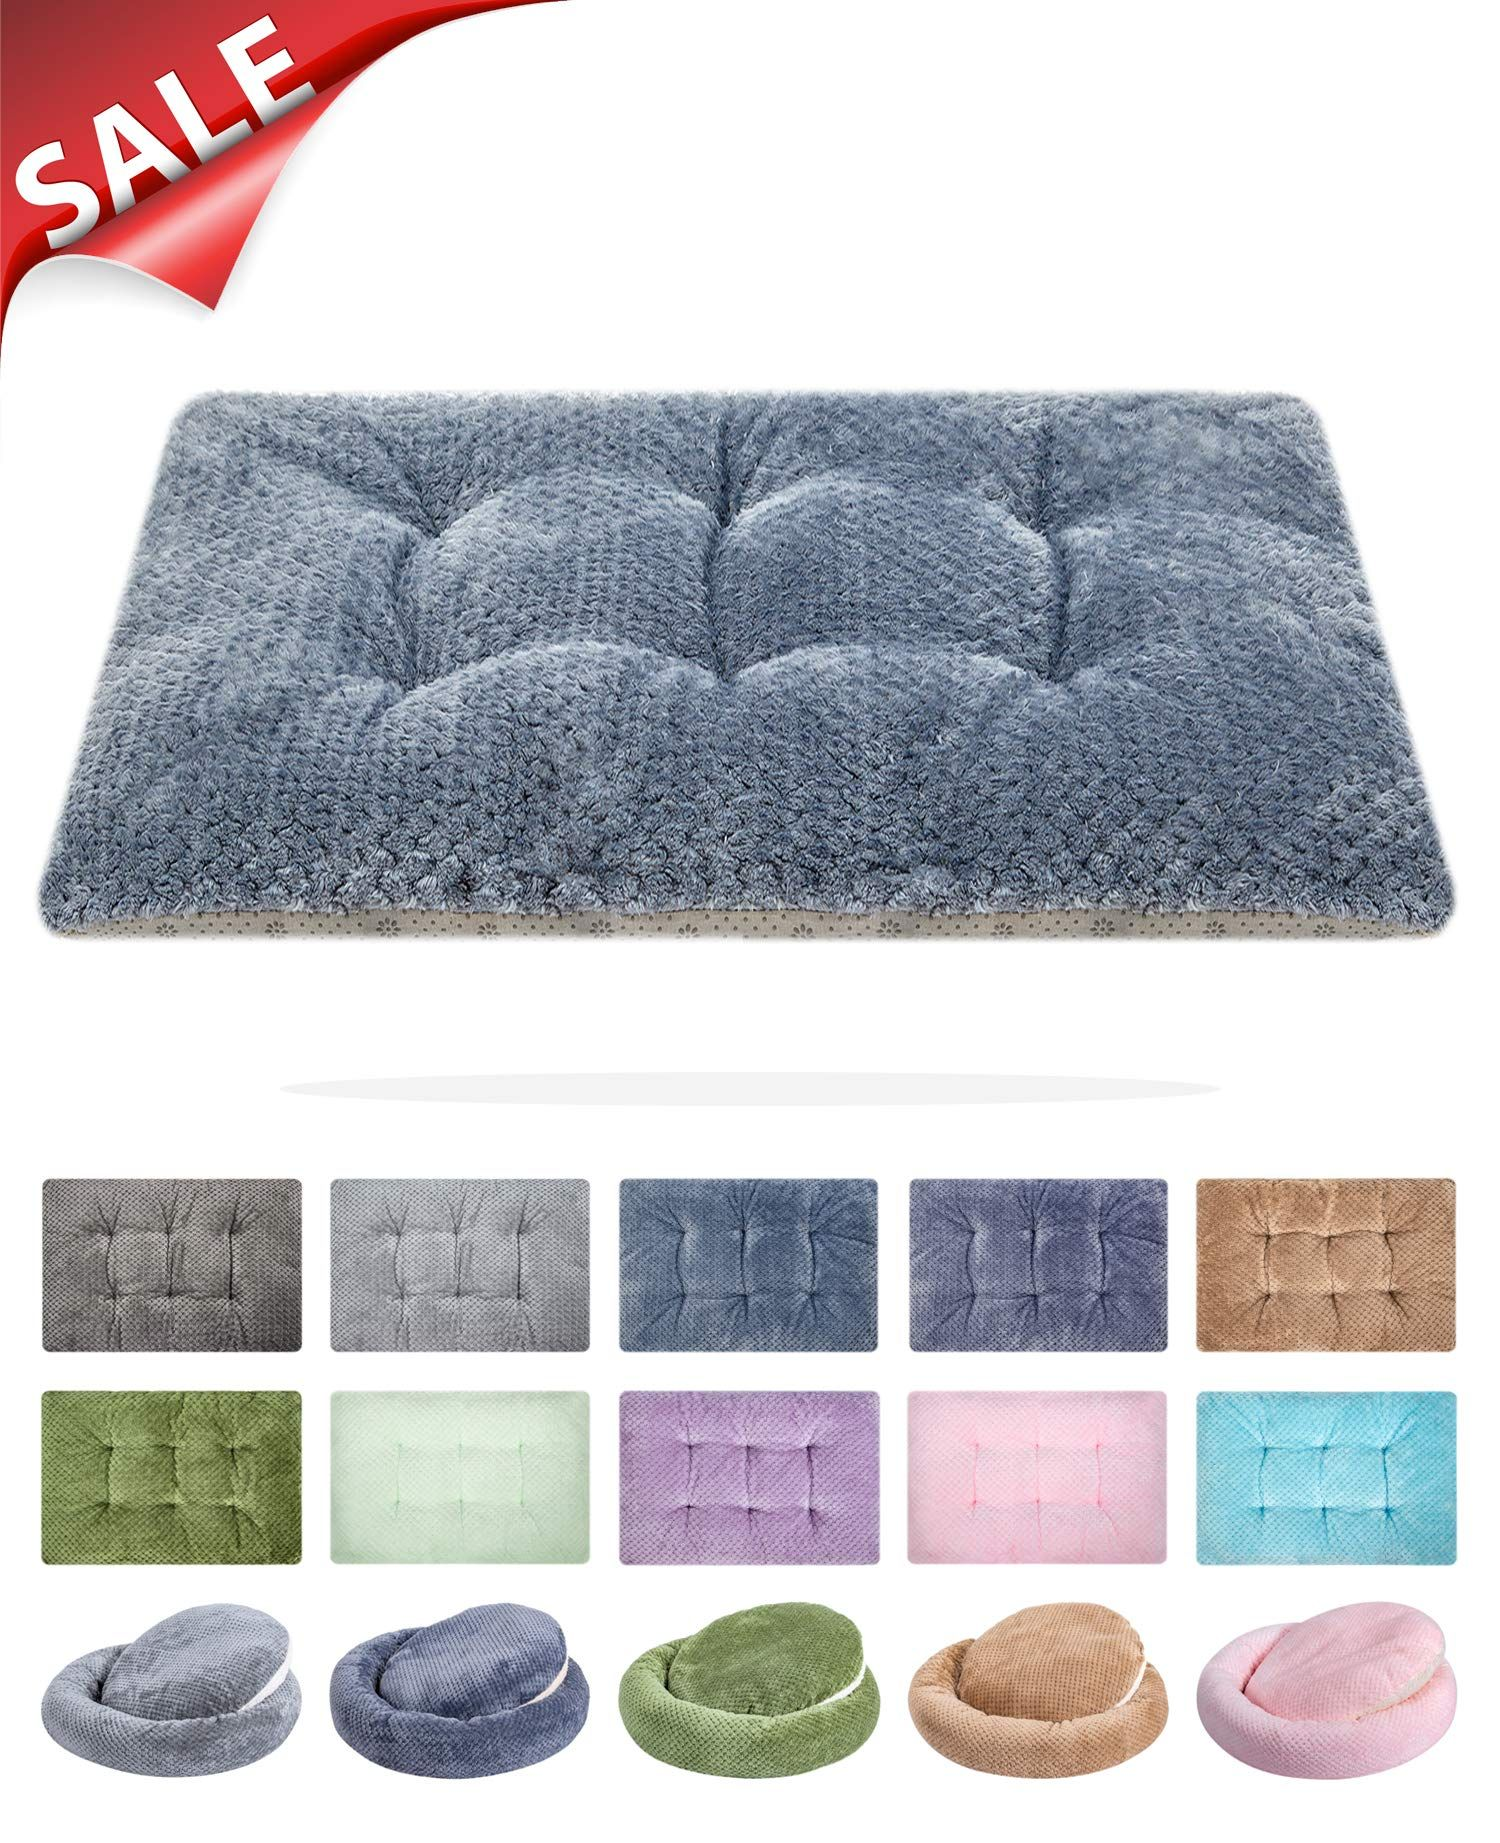 WONDER MIRACLE Fuzzy Deluxe Pet Beds, Super Plush Dog or